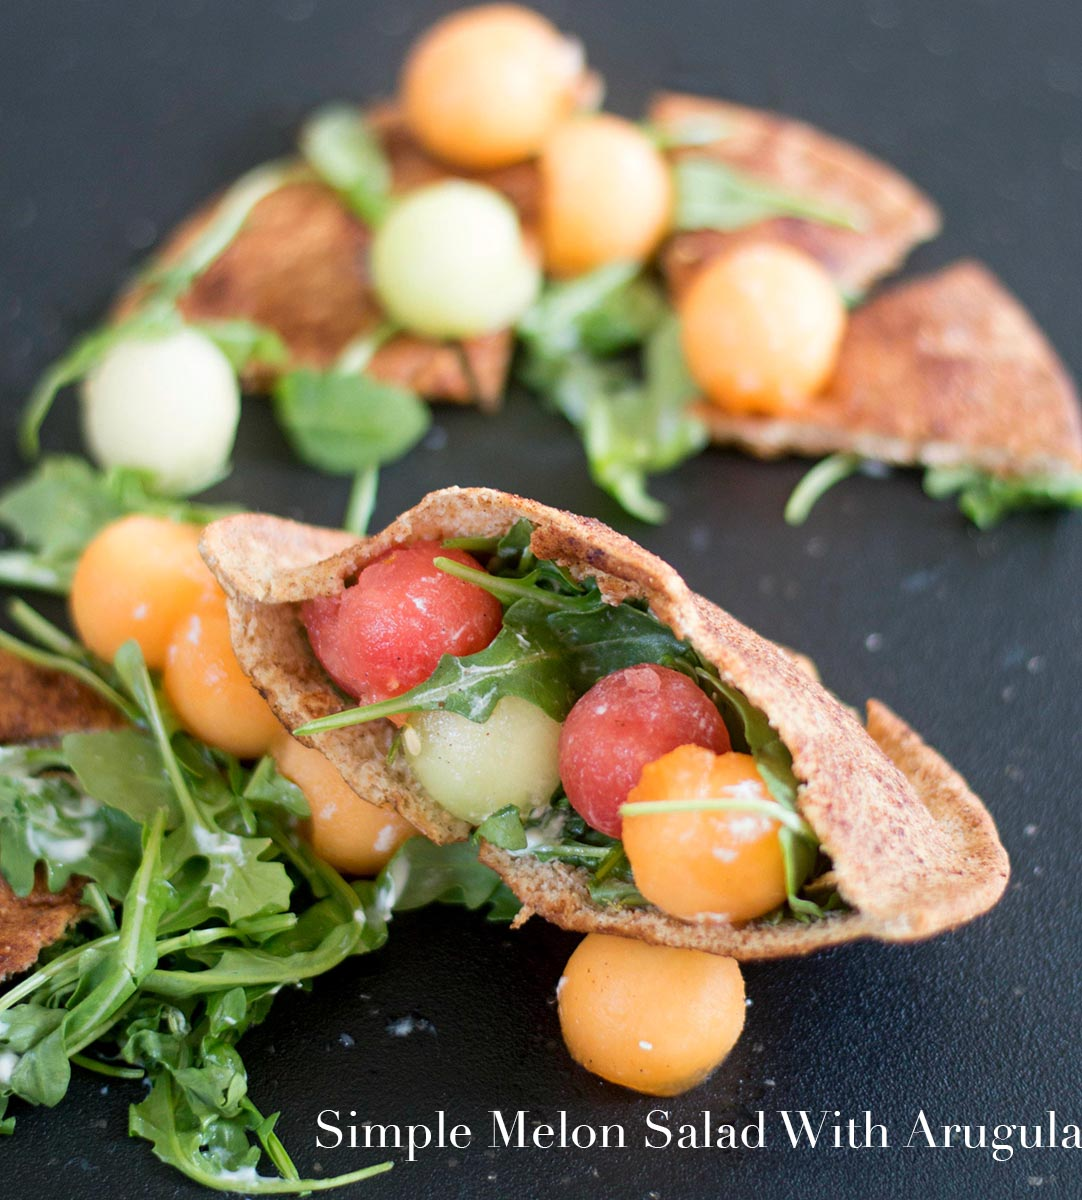 Melon Balls in a pita pocket and surrounded by more melon balls, arugula and pita chips